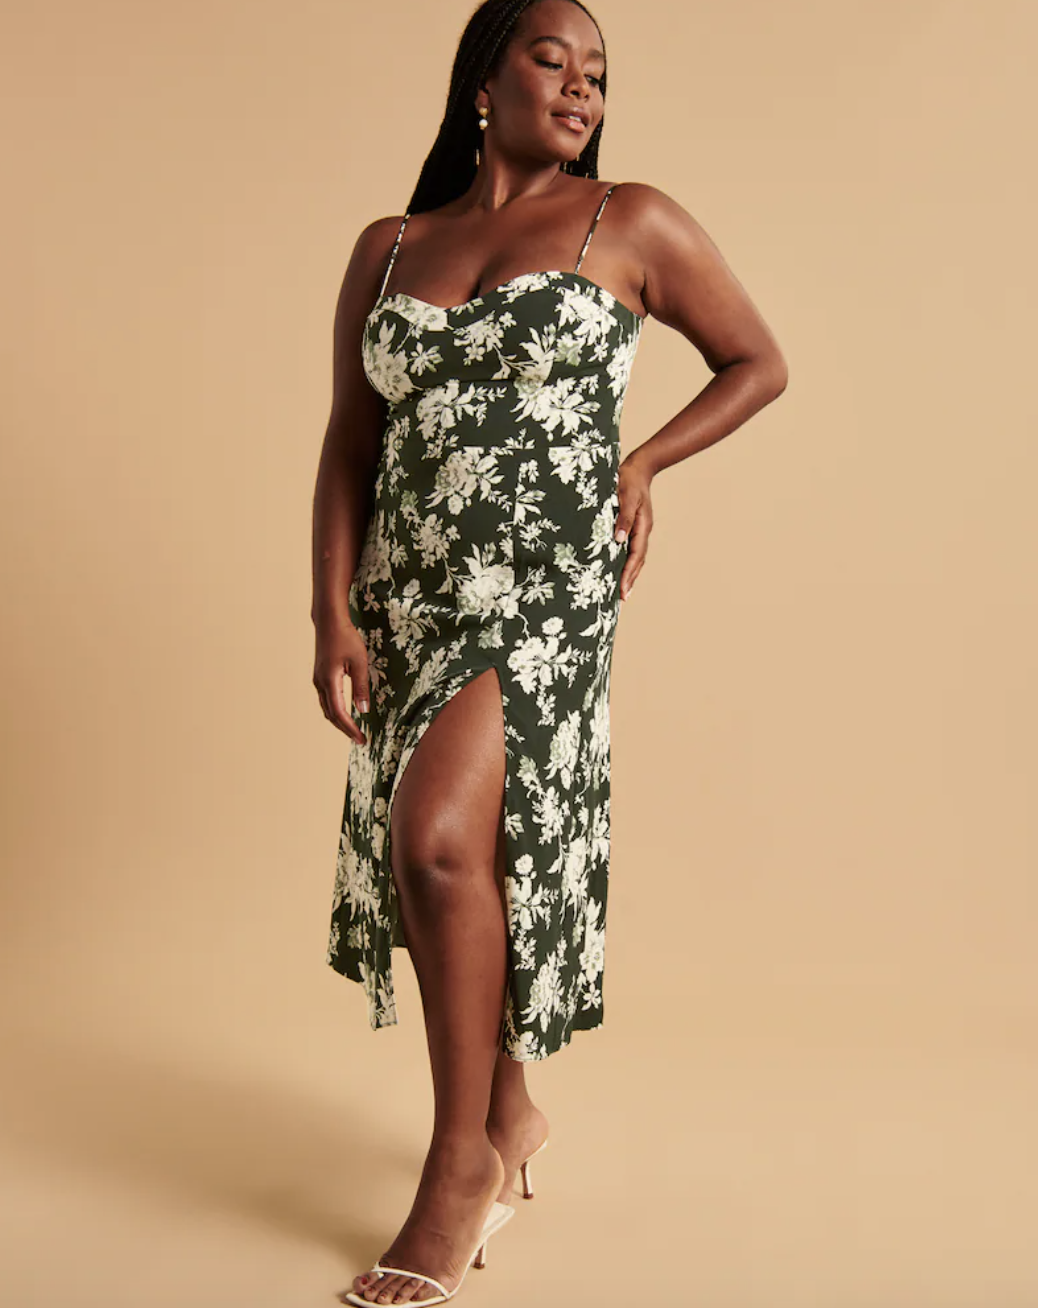 model wearing the mid-length spaghetti-strap dress in green with white flowers all over it